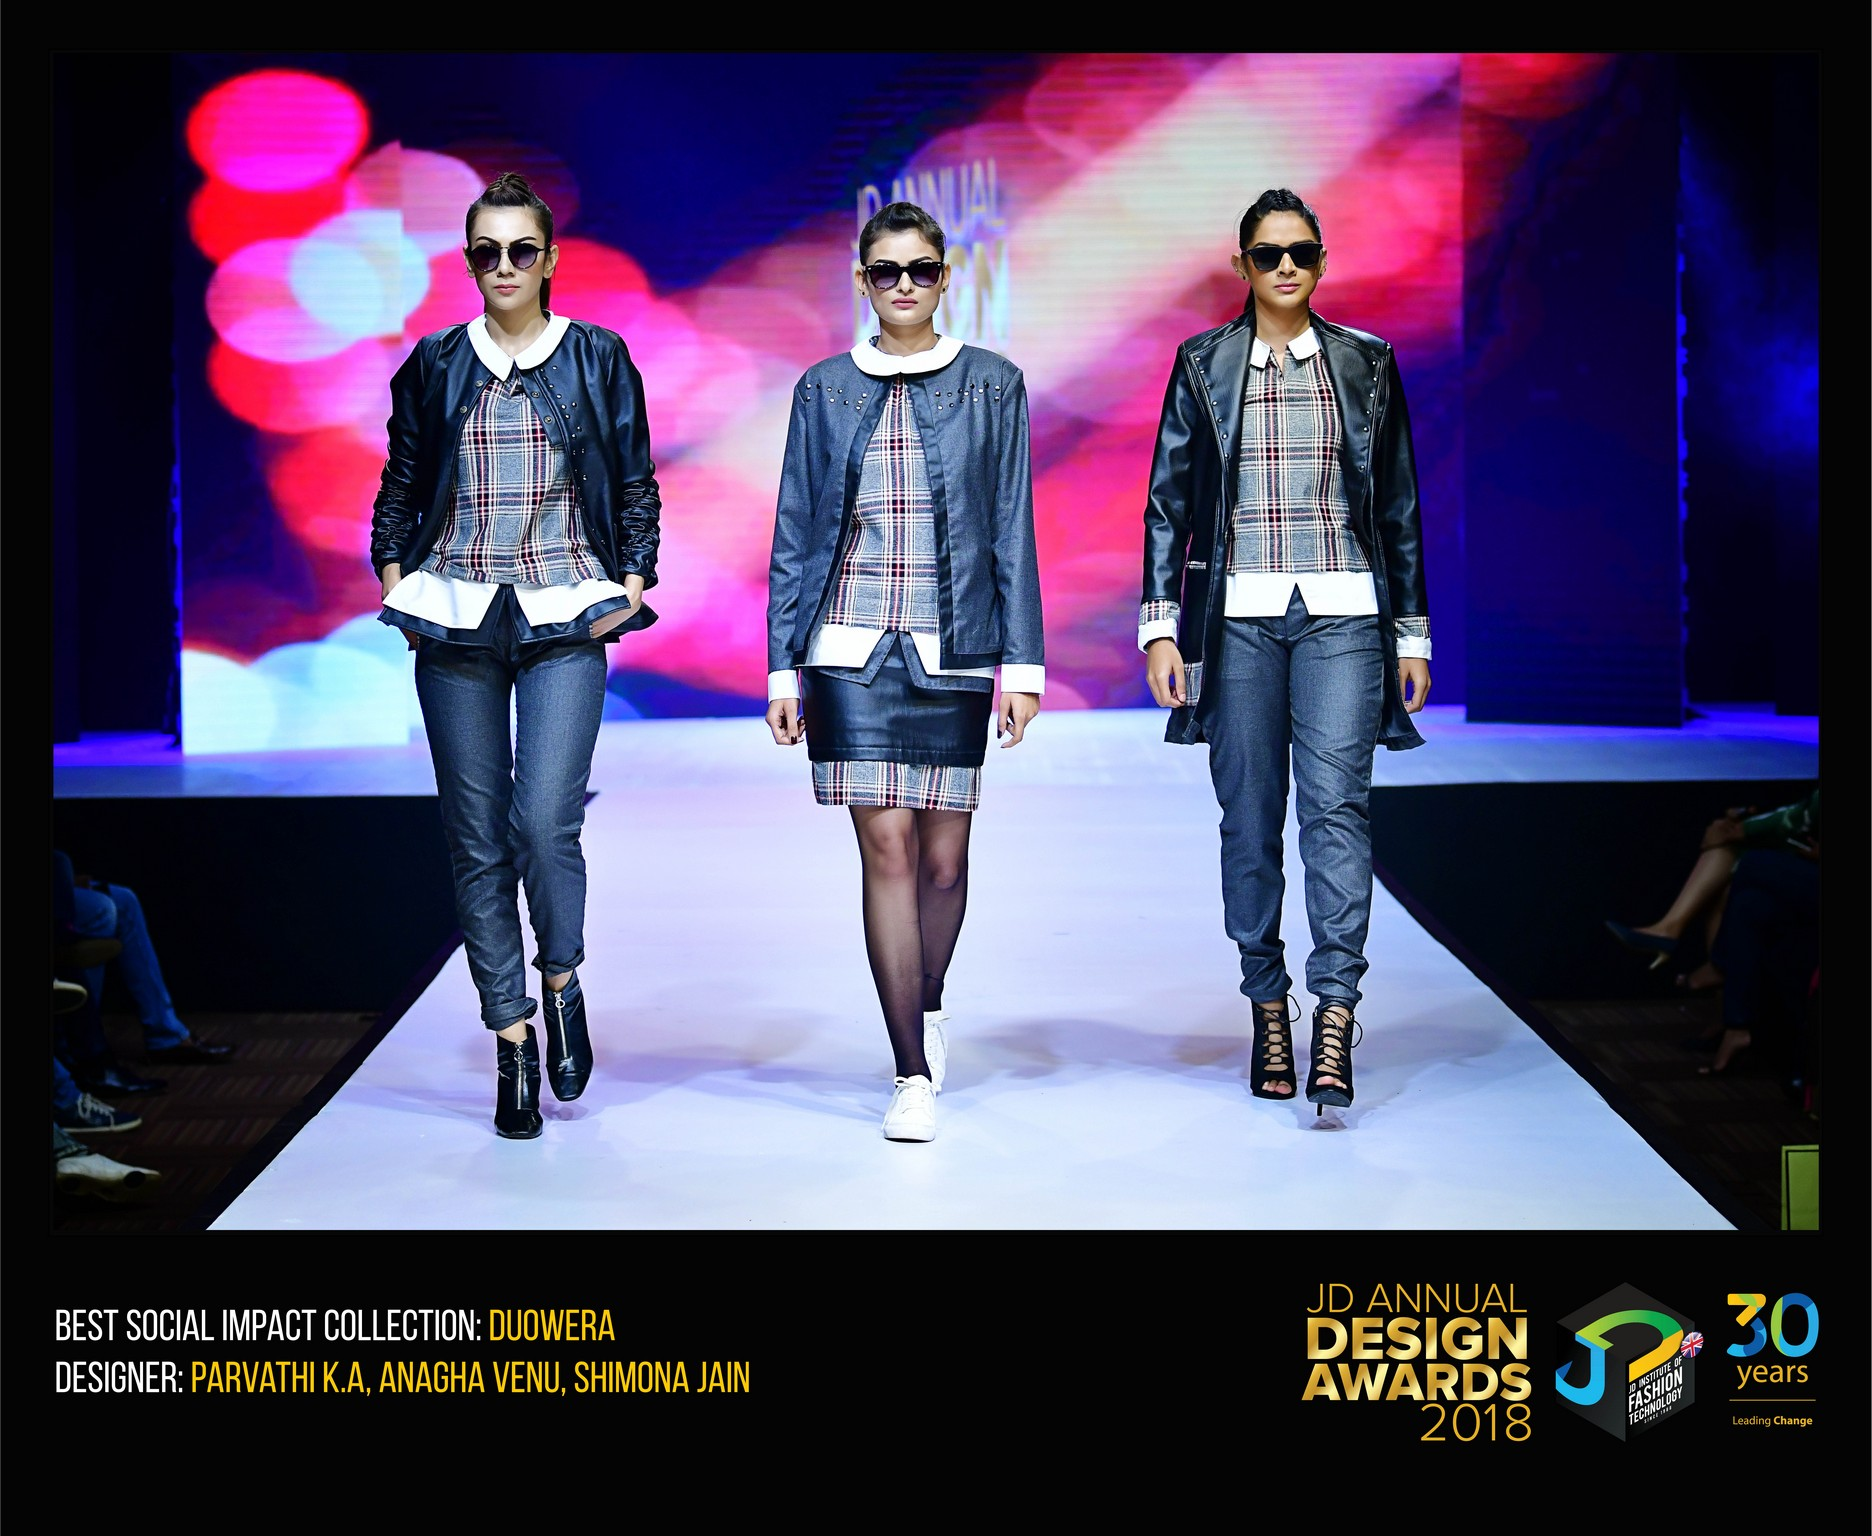 Duowera – Change – JD Annual Design Awards 2018 | Designer: Parvathi, Anagha and Shimona | Photography : Jerin Nath (@jerin_nath) duowera - Duowera6 - Duowera – Change – JD Annual Design Awards 2018